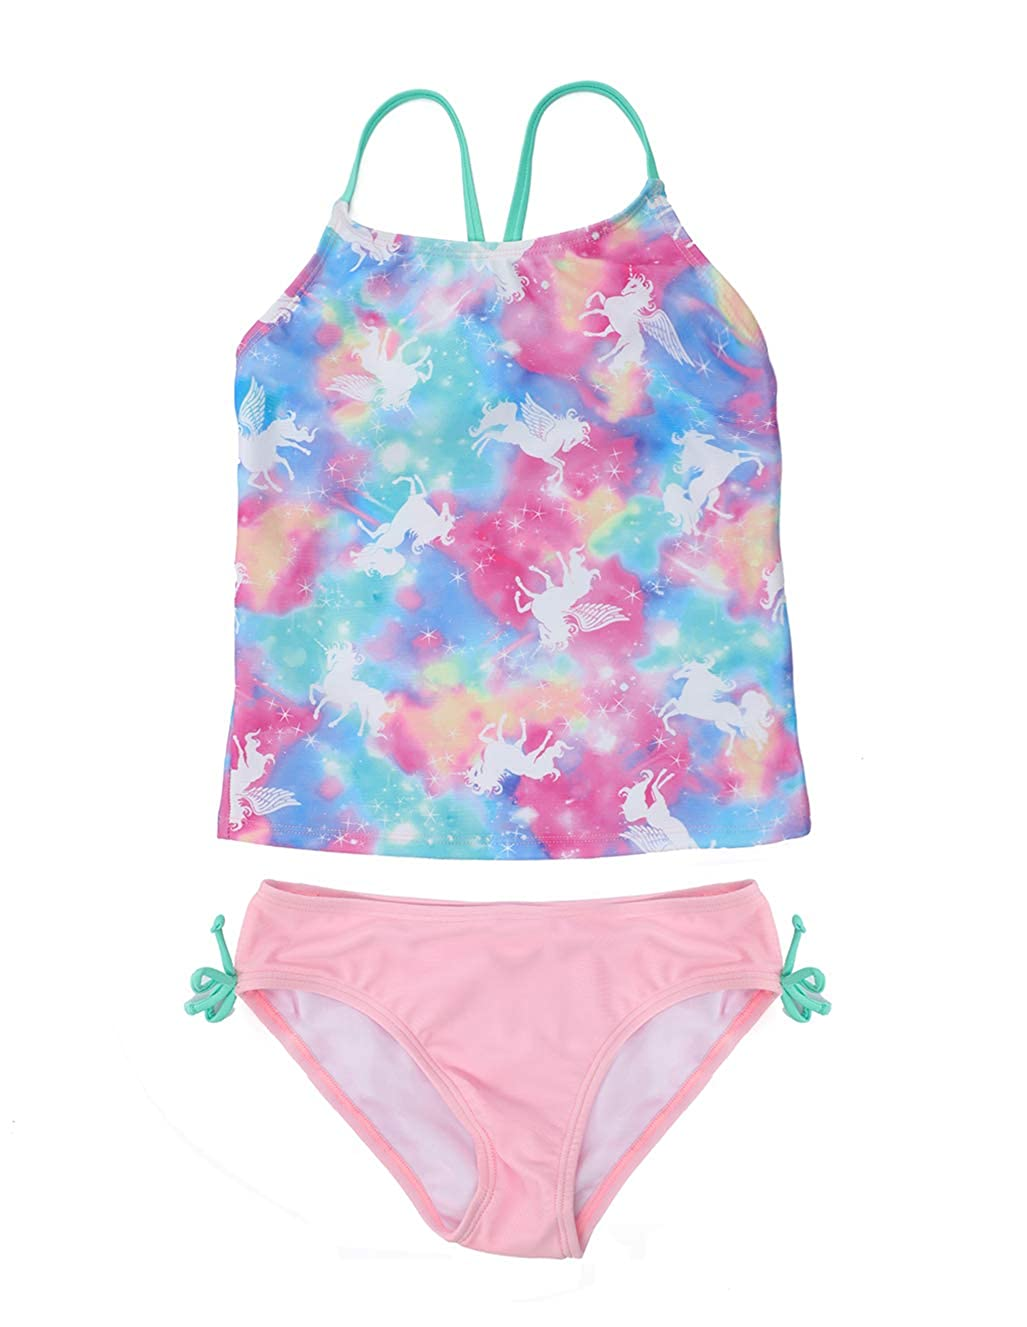 Colorful Floral Printing T-Back Beach Tankini Swimsuits for Kids LEINASEN Two Piece Bathing Suits for Girls